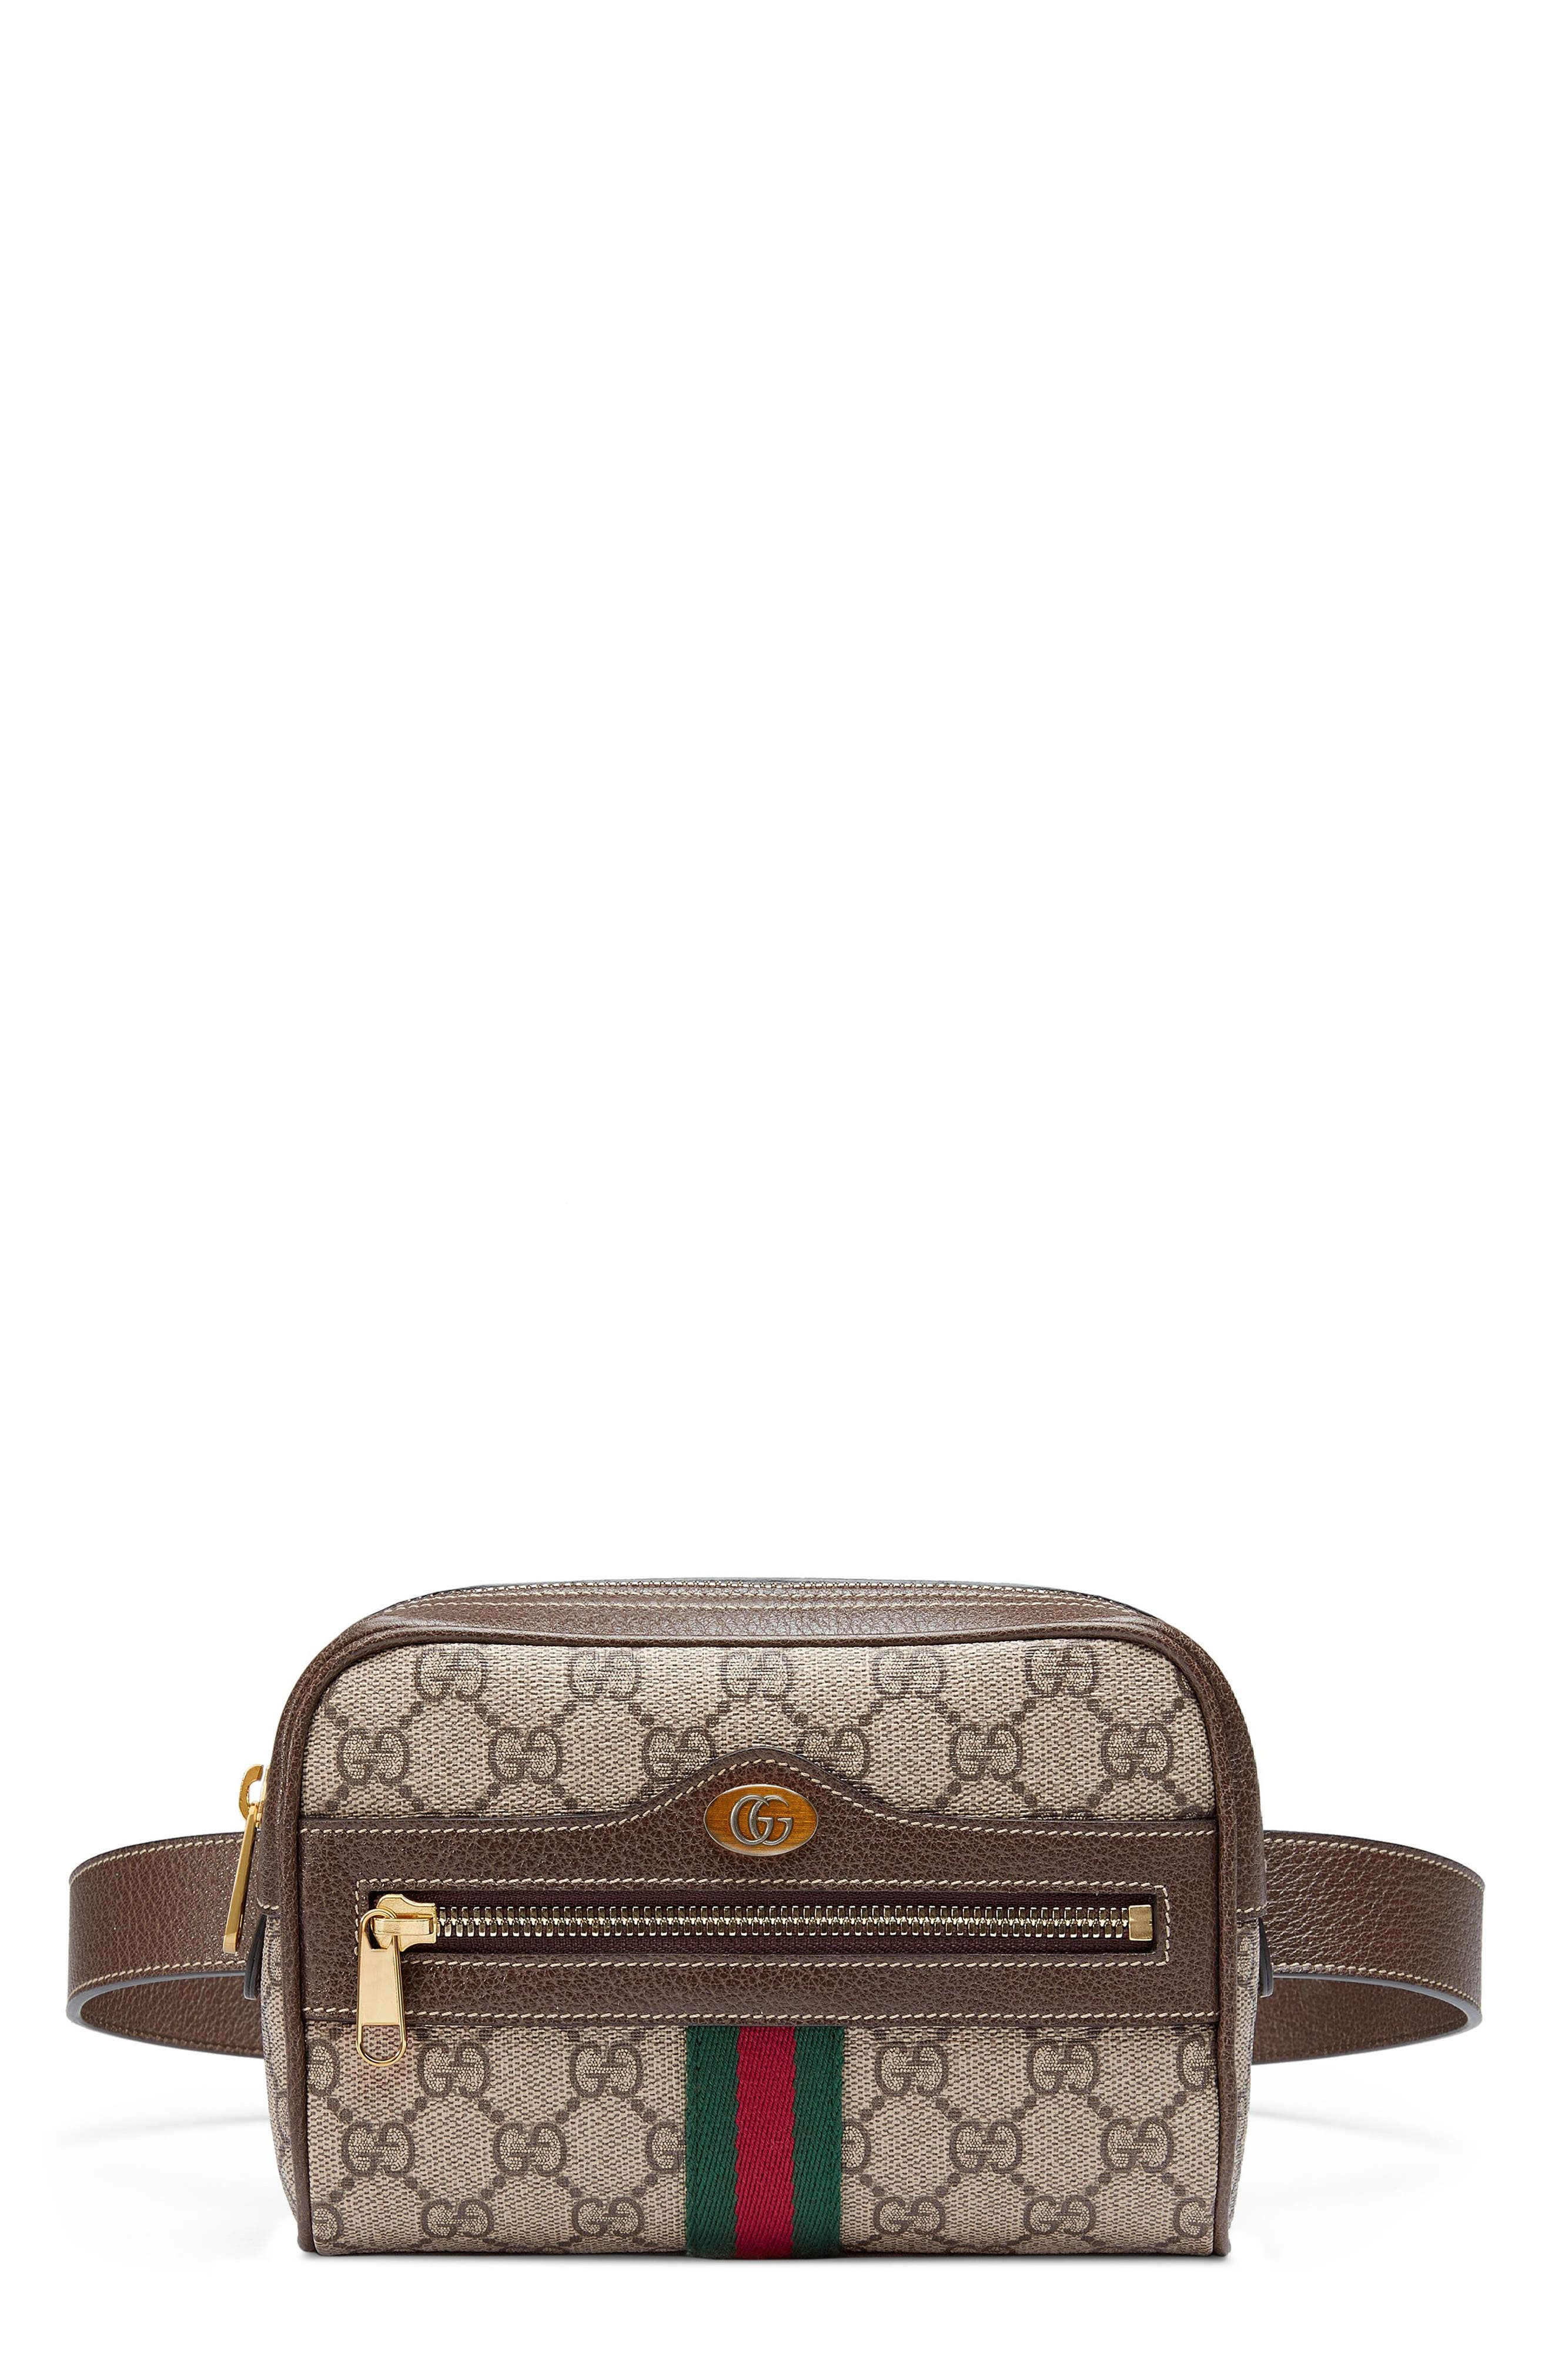 Small Ophidia GG Supreme Canvas Belt Bag,                         Main,                         color, Beige Ebony/ Acero/ Vert Red